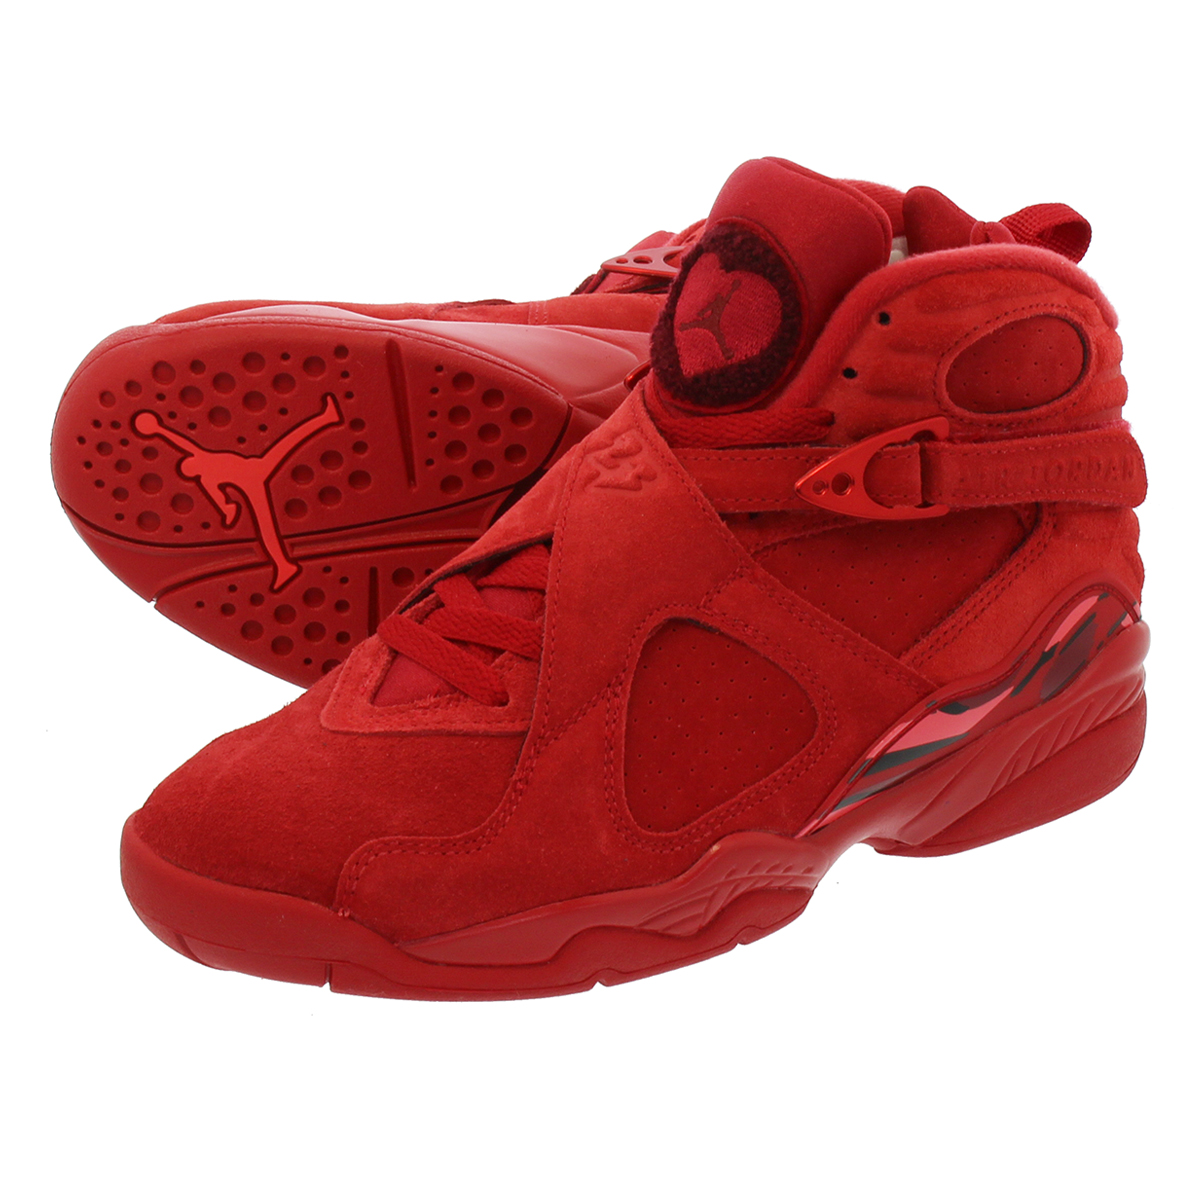 NIKE WMNS AIR JORDAN 8 RETRO VDAY 【VALENTINE'S DAY】 ナイキ ウィメンズ エア ジョーダン 8 レトロ GYM RED/EMBER GLOW/TEAM RED aq2449-614